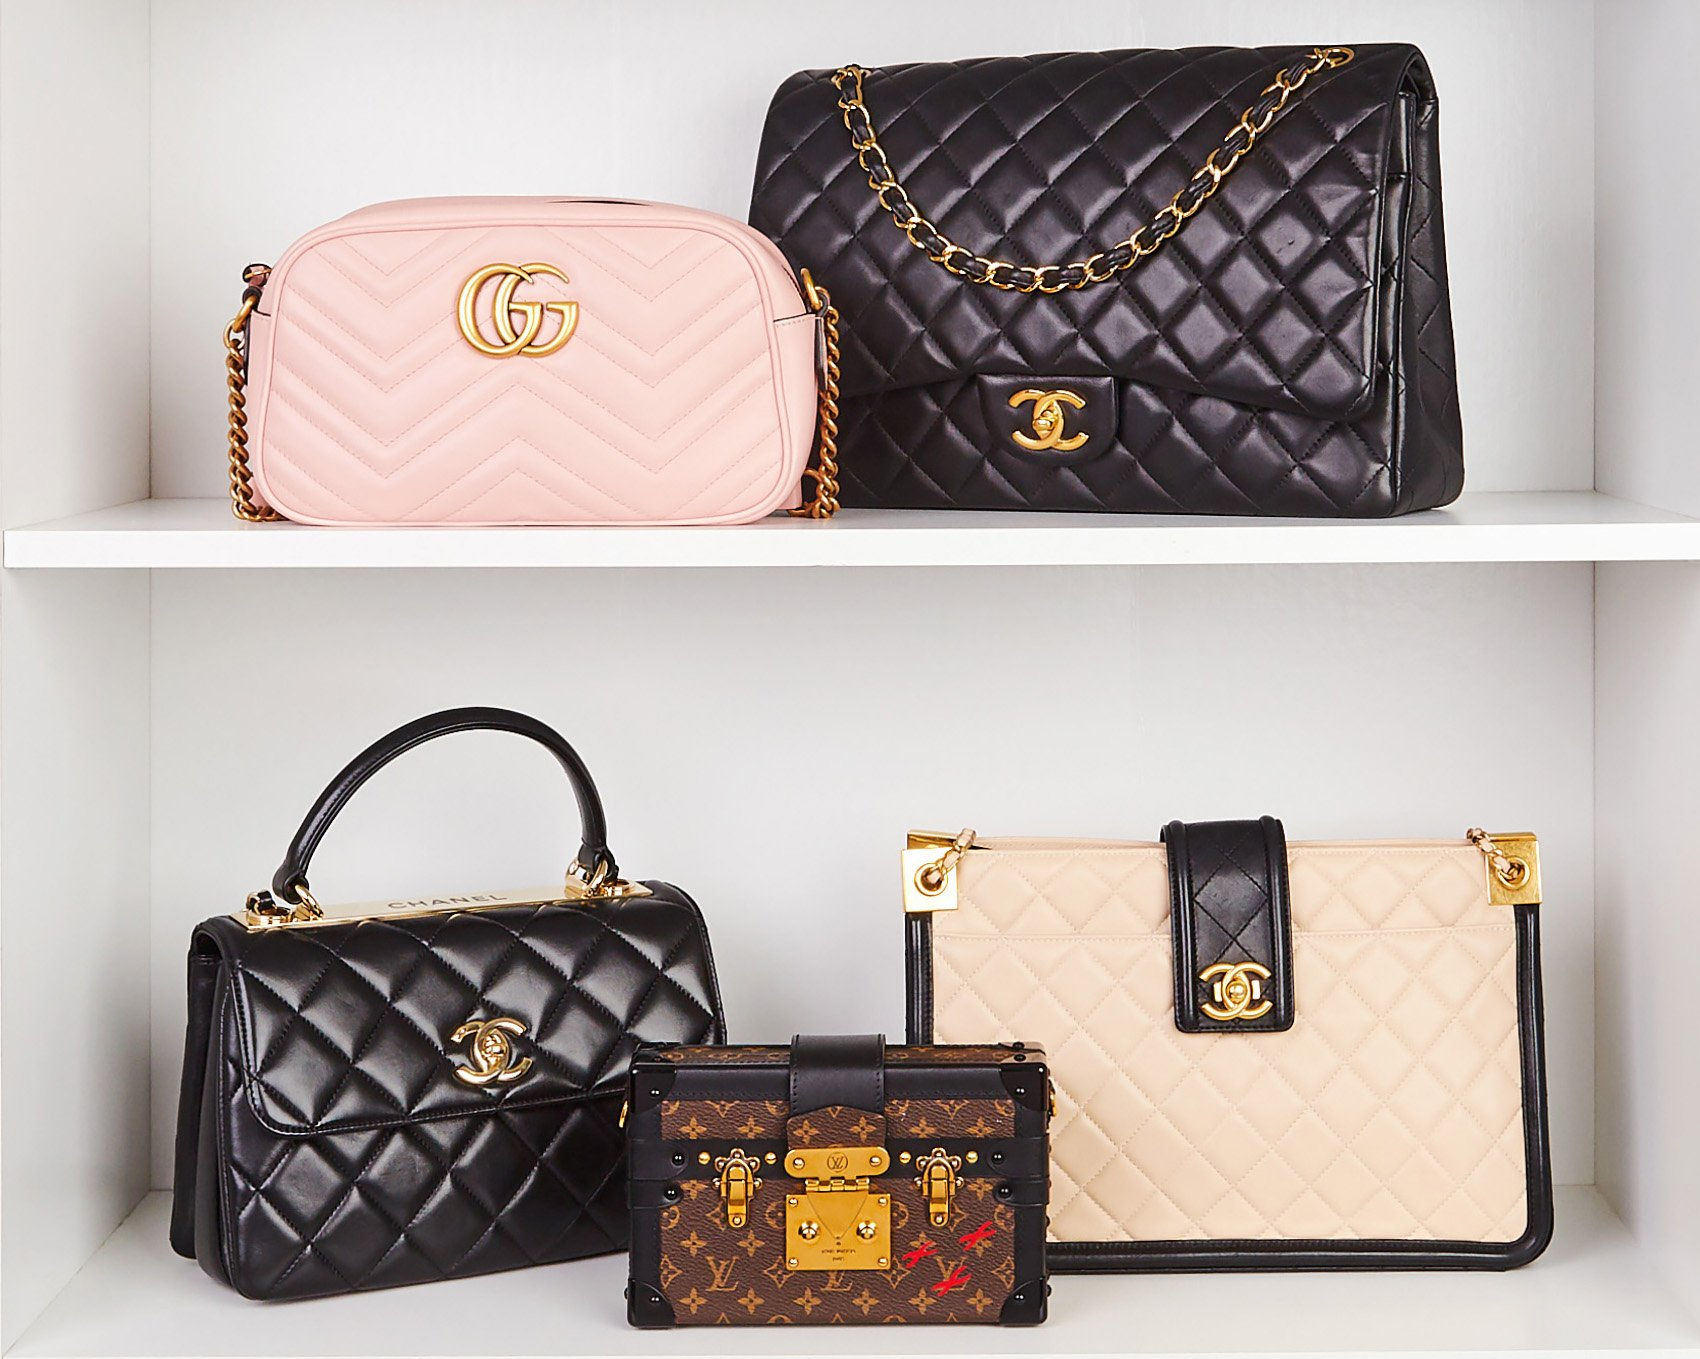 Make money by consigning your designer handbags! | Yoogi's Closet Authenticated Pre-Owned Luxury yoogiscloset.com #louisvuitton #gucci #chanel #designerhandbags